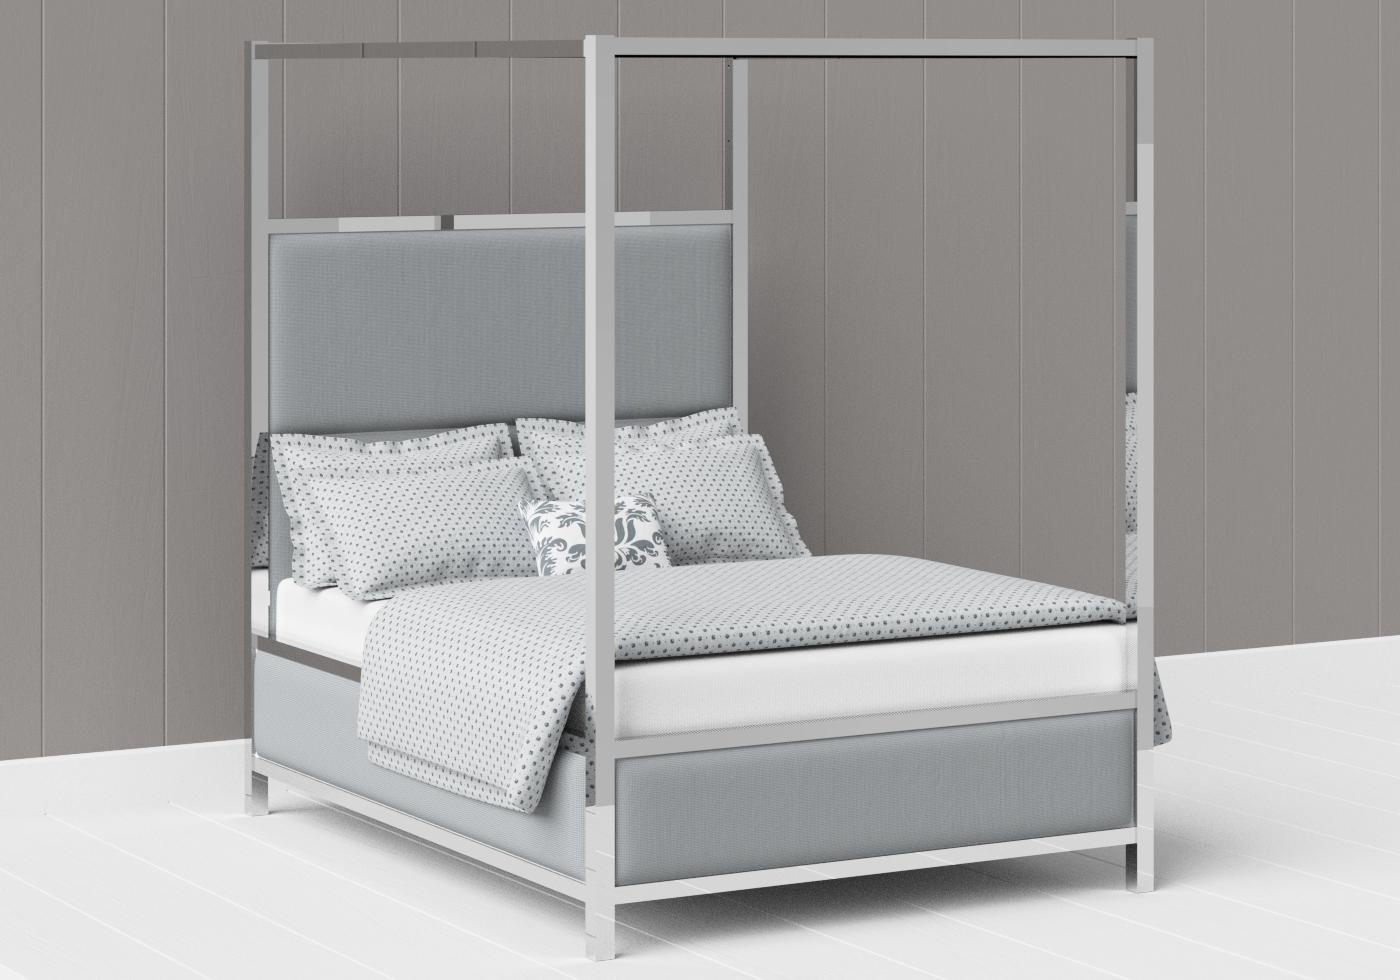 Torridon upholstered four poster chrome bed